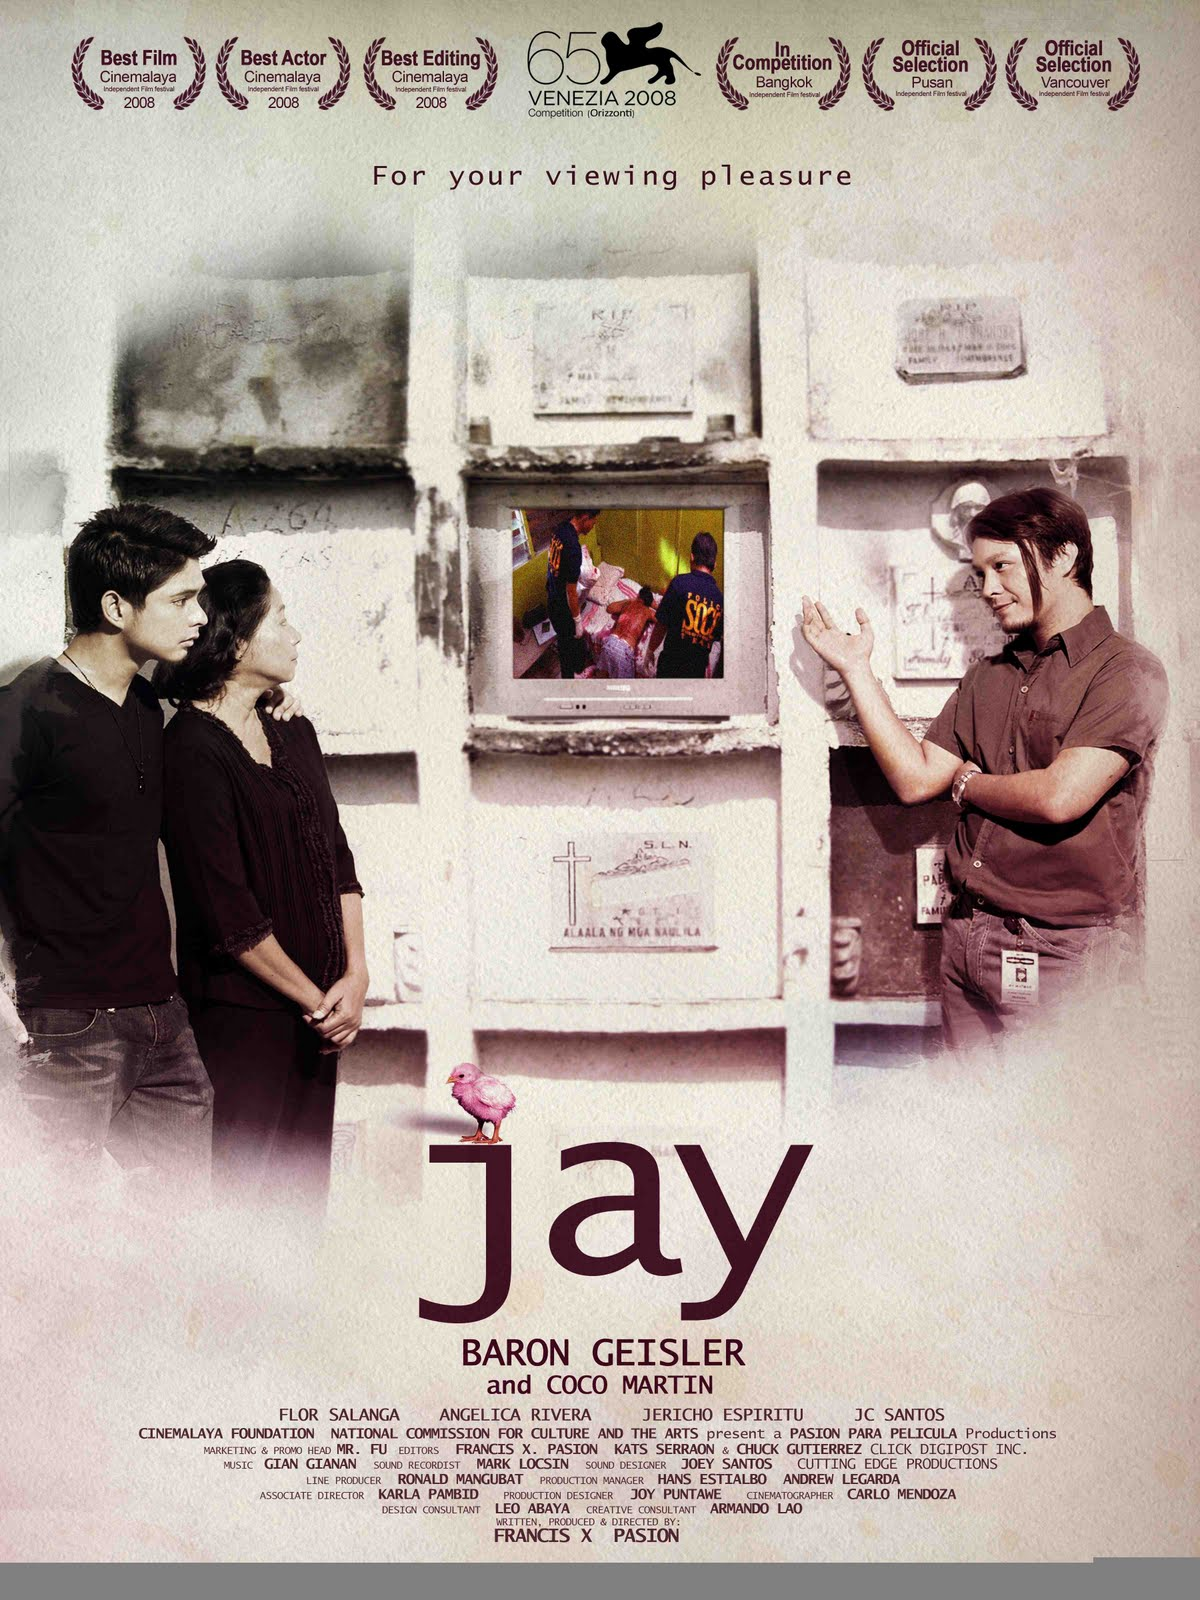 Cinemalaya What to Watch YuneOh Events